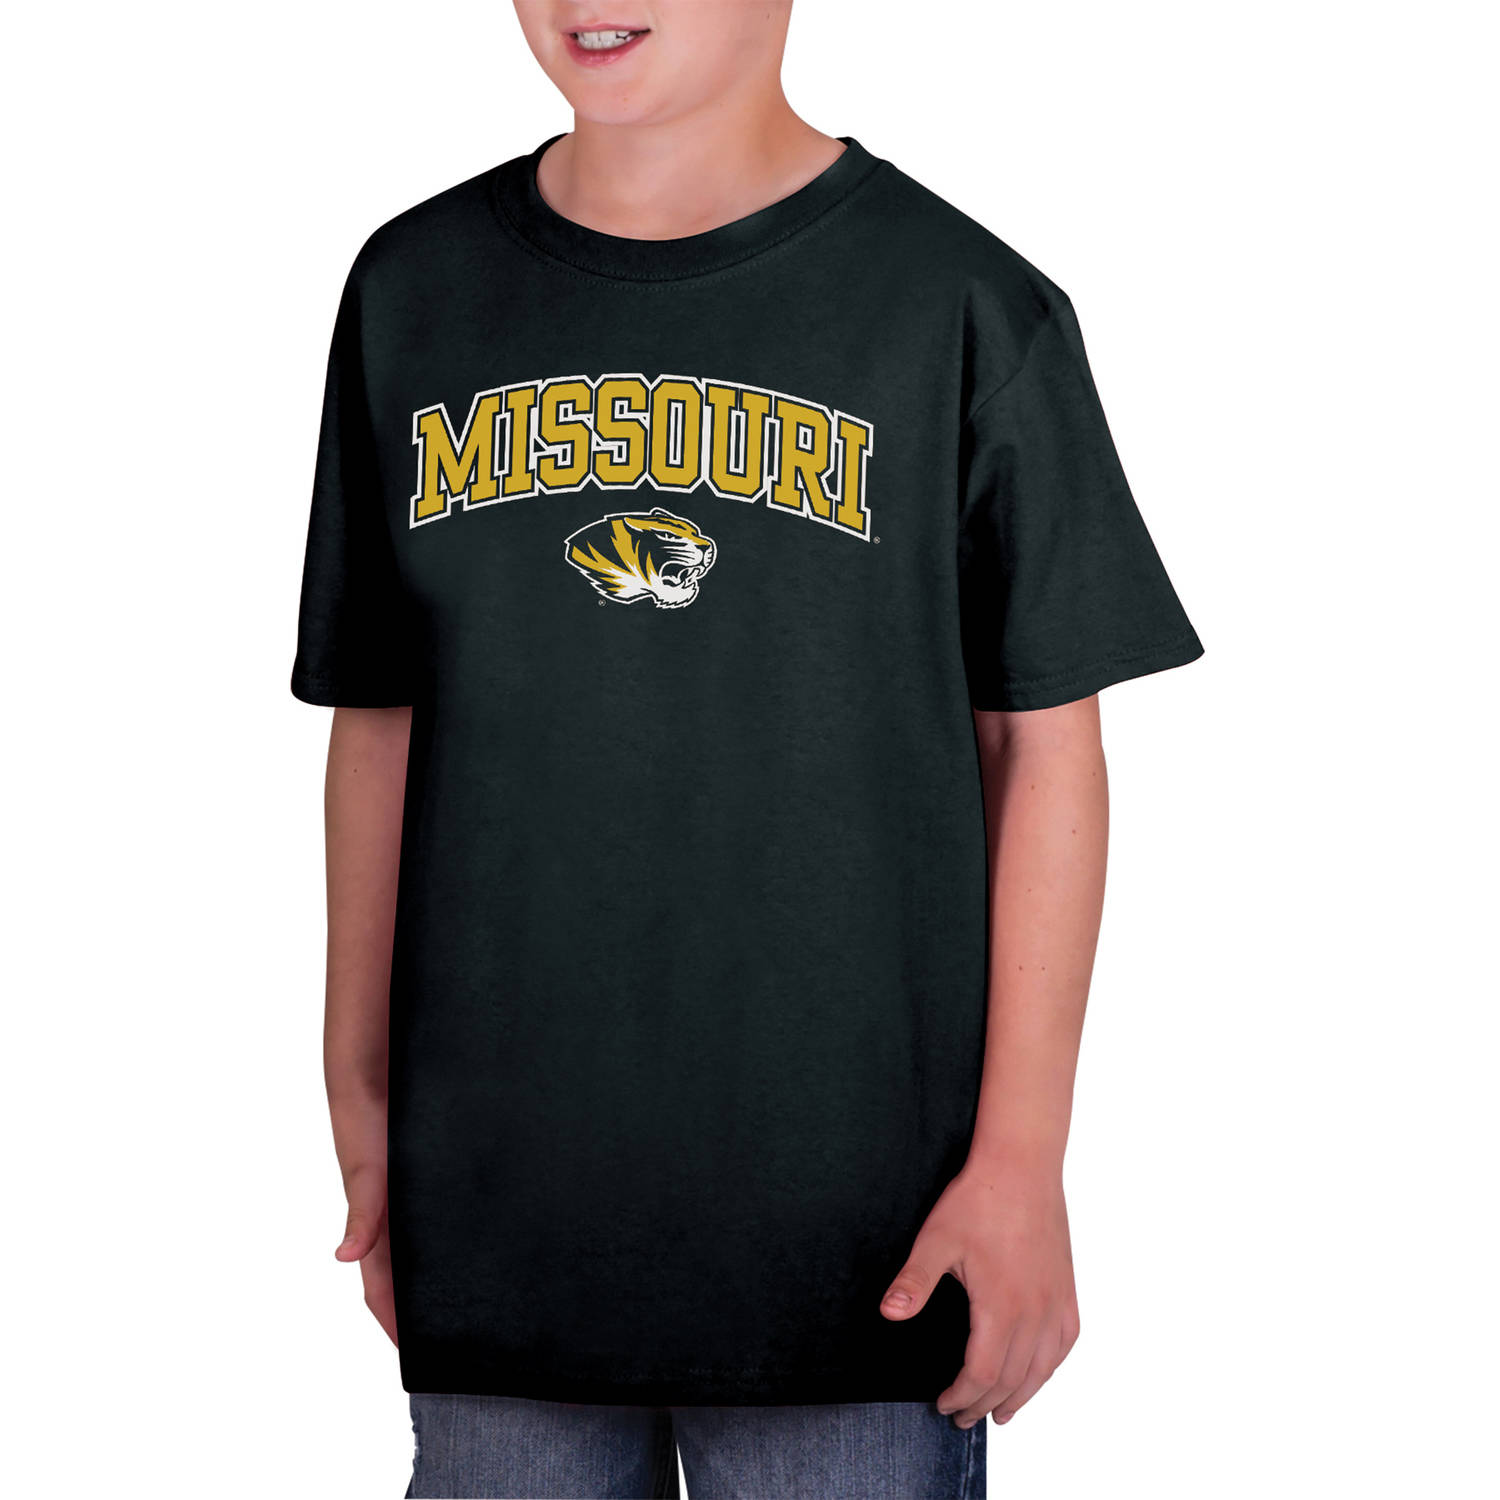 NCAA Missouri Tigers Boys Classic Cotton T-Shirt